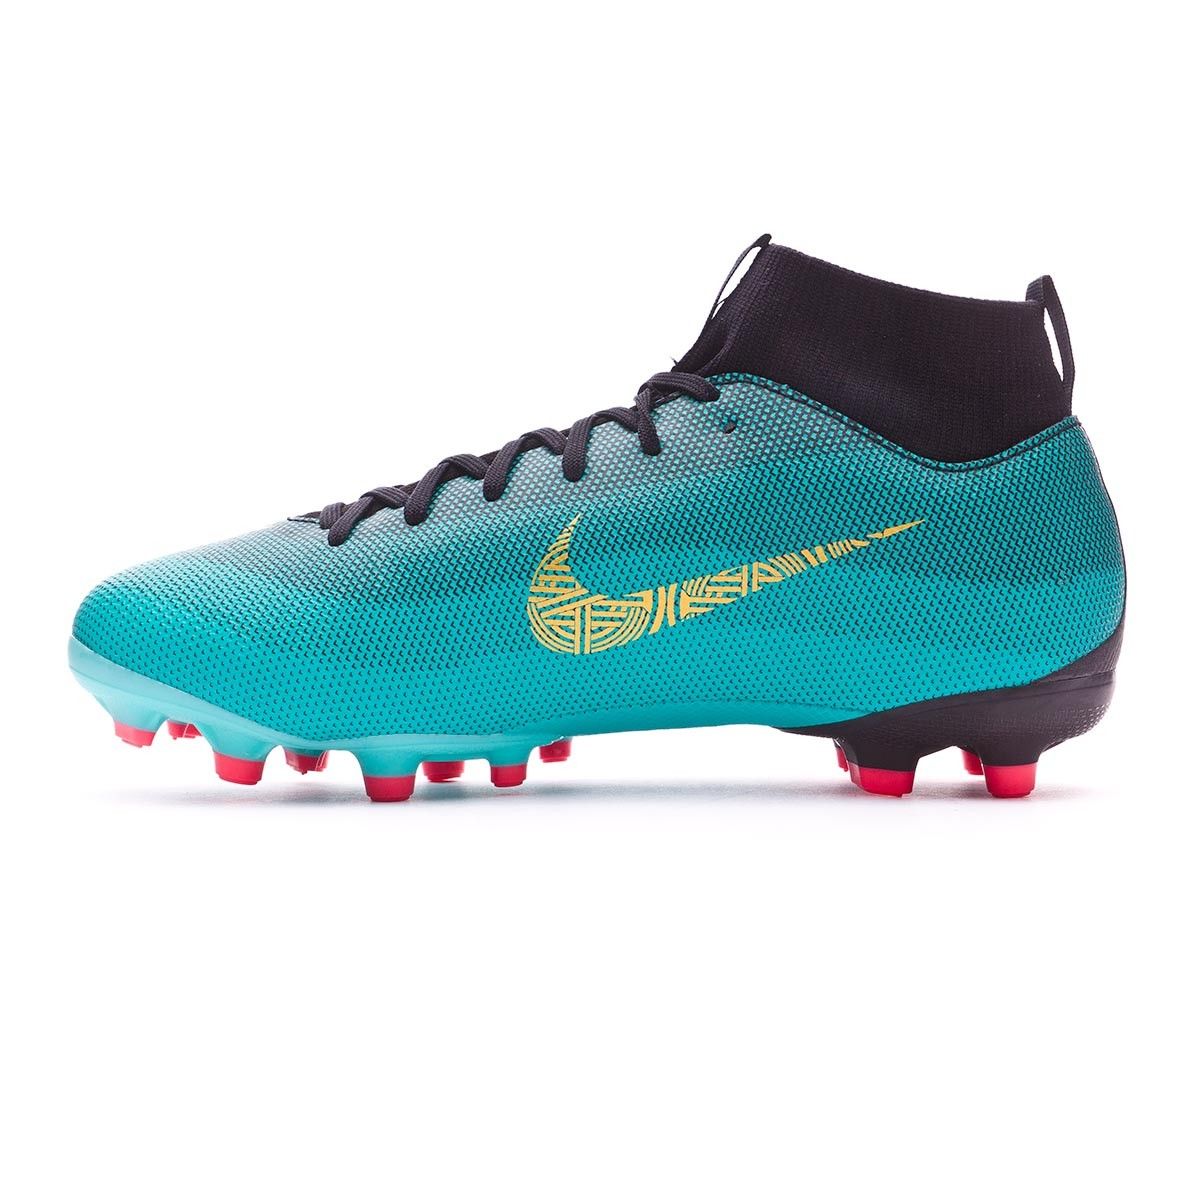 Zapatos de fútbol Nike Mercurial Superfly VI Academy GS CR7 MG Niño